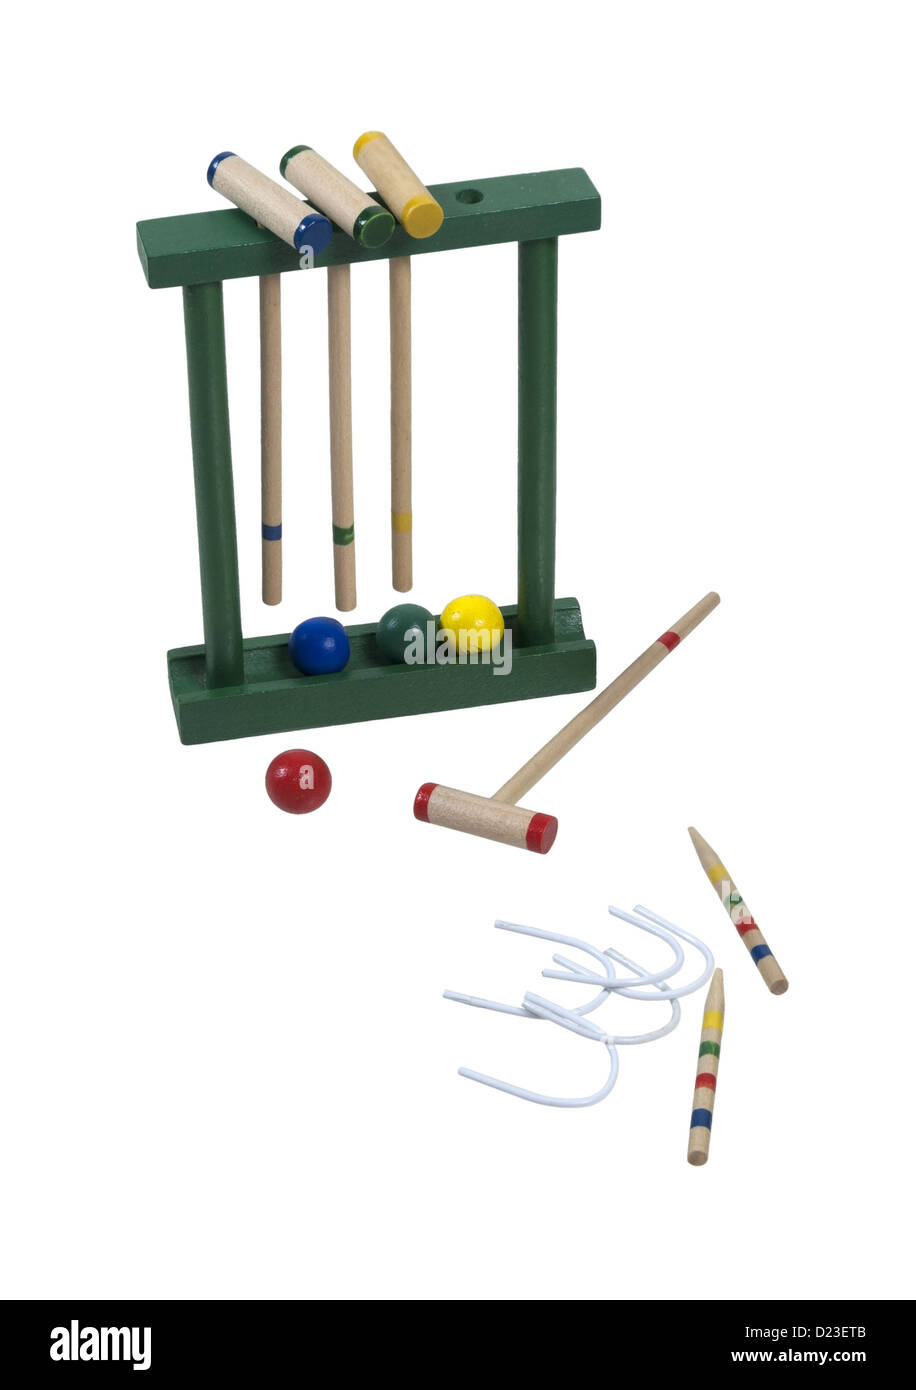 Croquet set with mallets and balls path included stock photo croquet set with mallets and balls path included pooptronica Image collections